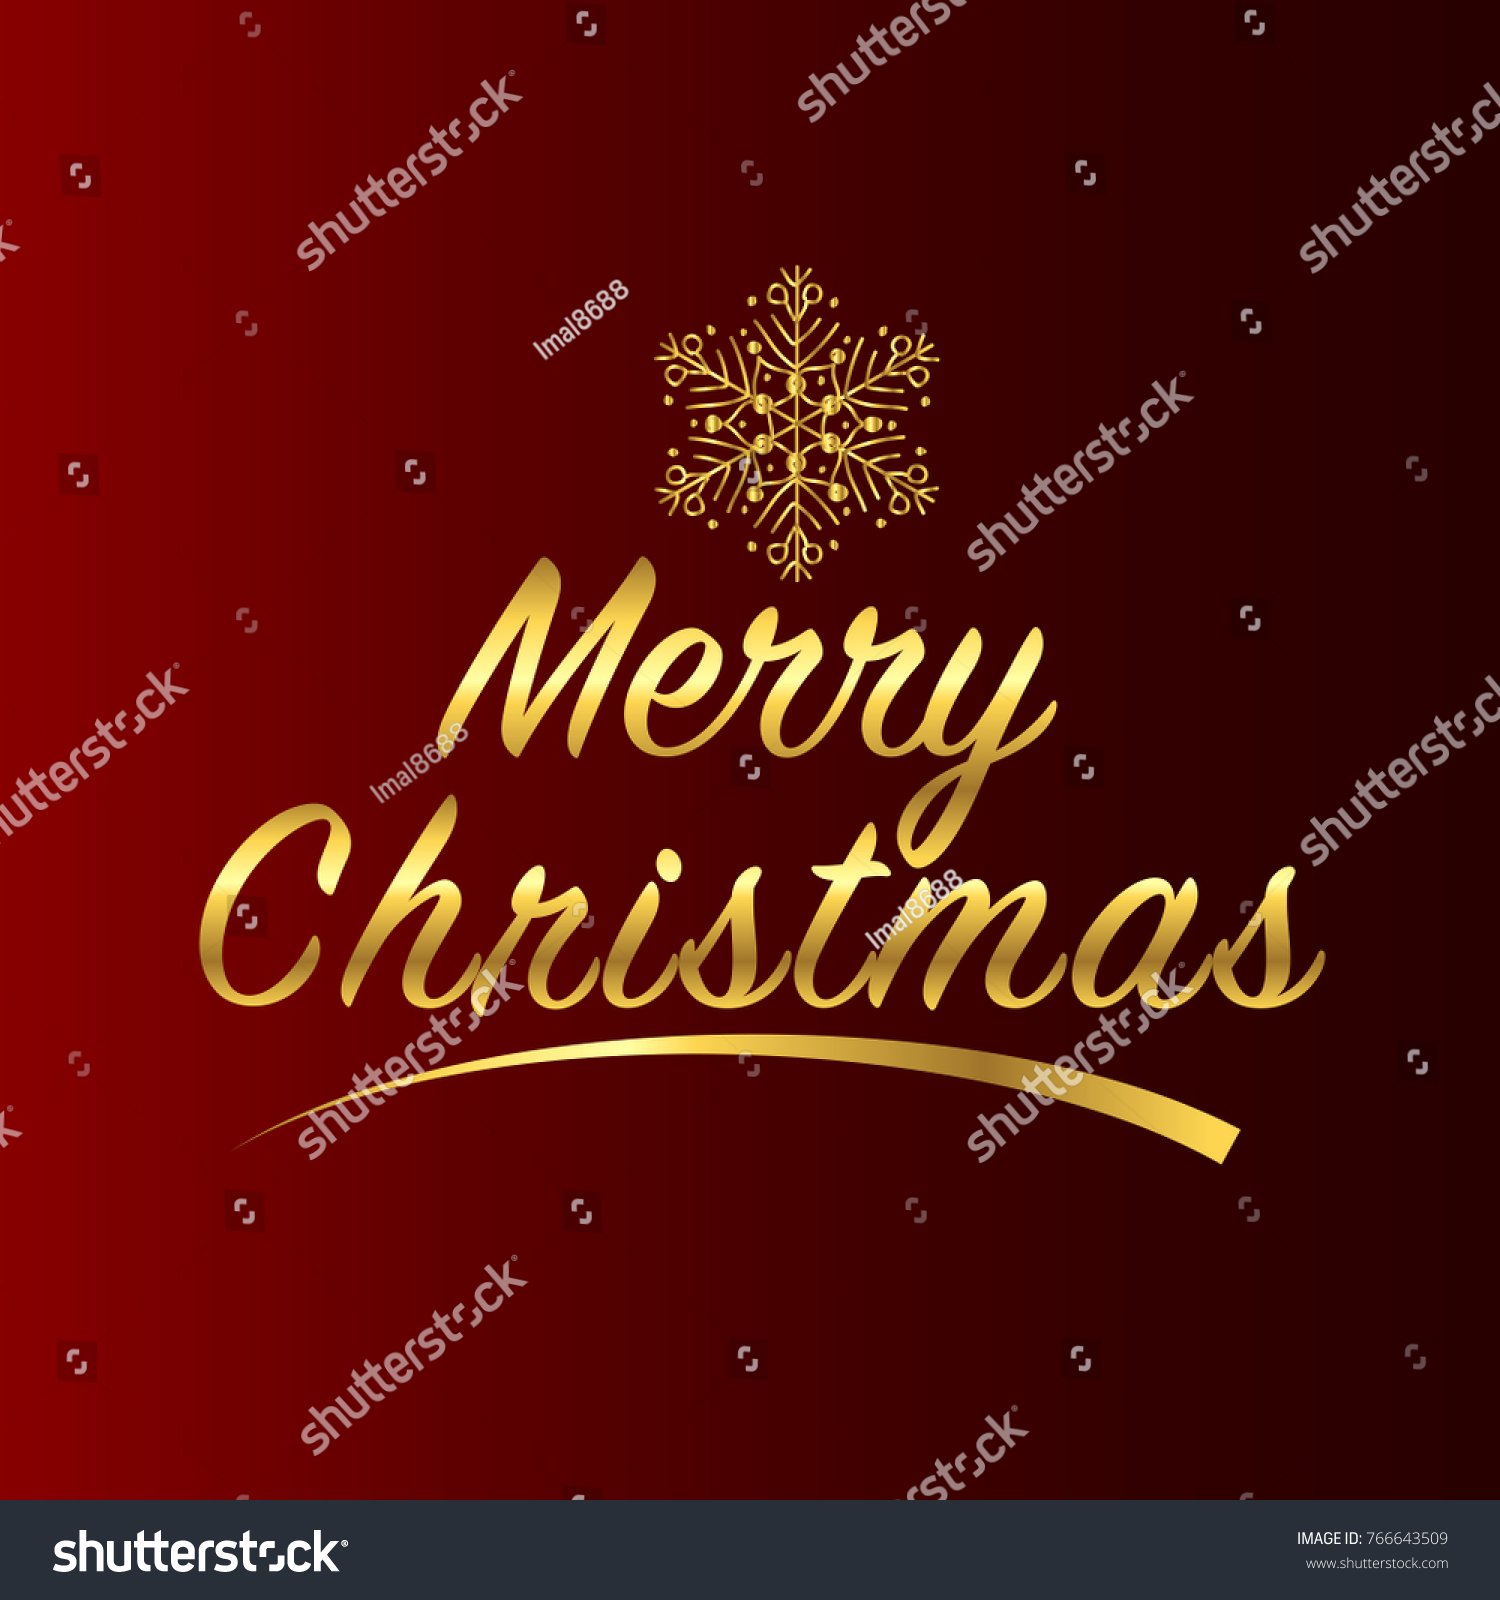 Merry christmas greetings card red gold stock vector 766643509 merry christmas greetings card red and gold kristyandbryce Image collections